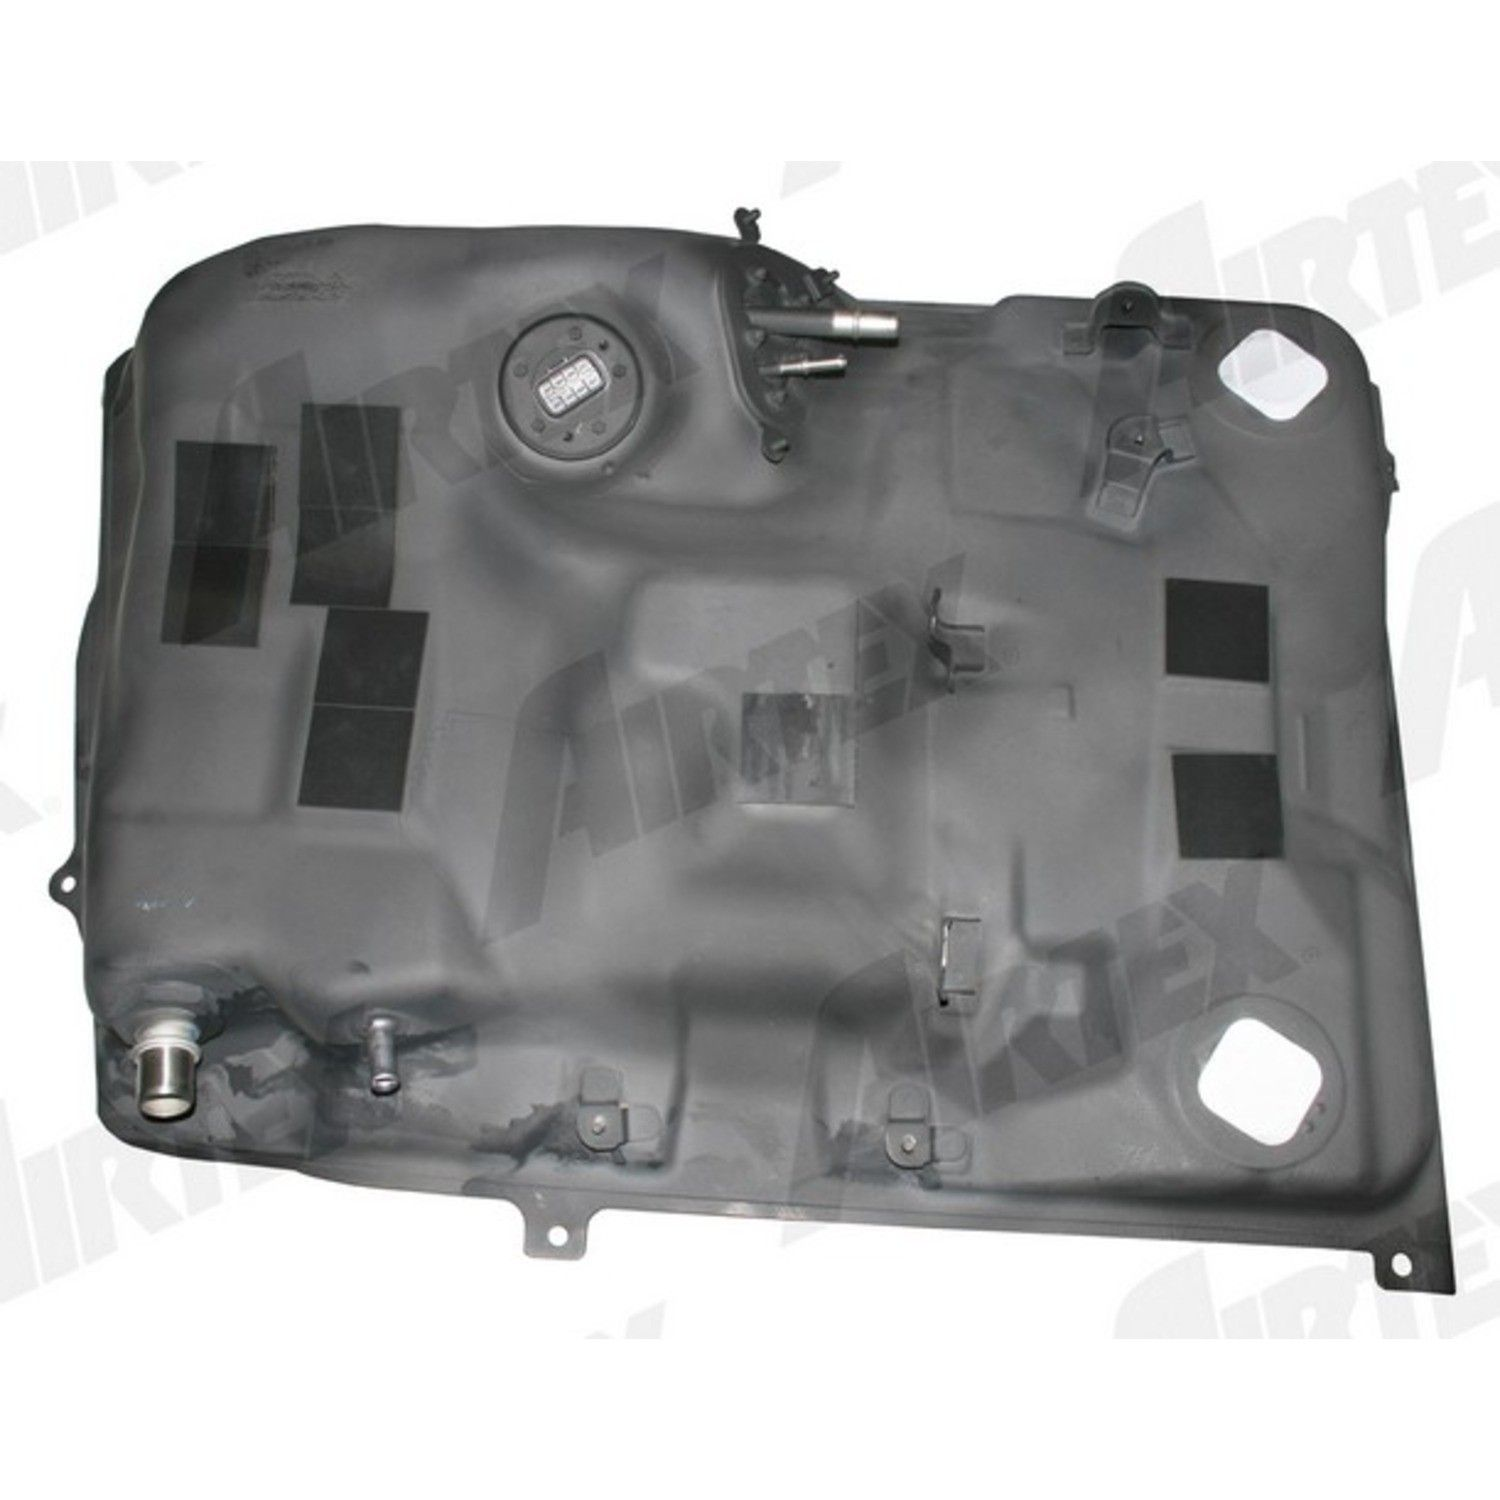 2001 Toyota Prius Fuel Tank And Pump Embly Combination N A 4 Cyl 1 5l Airtex E8889t Complete Unit